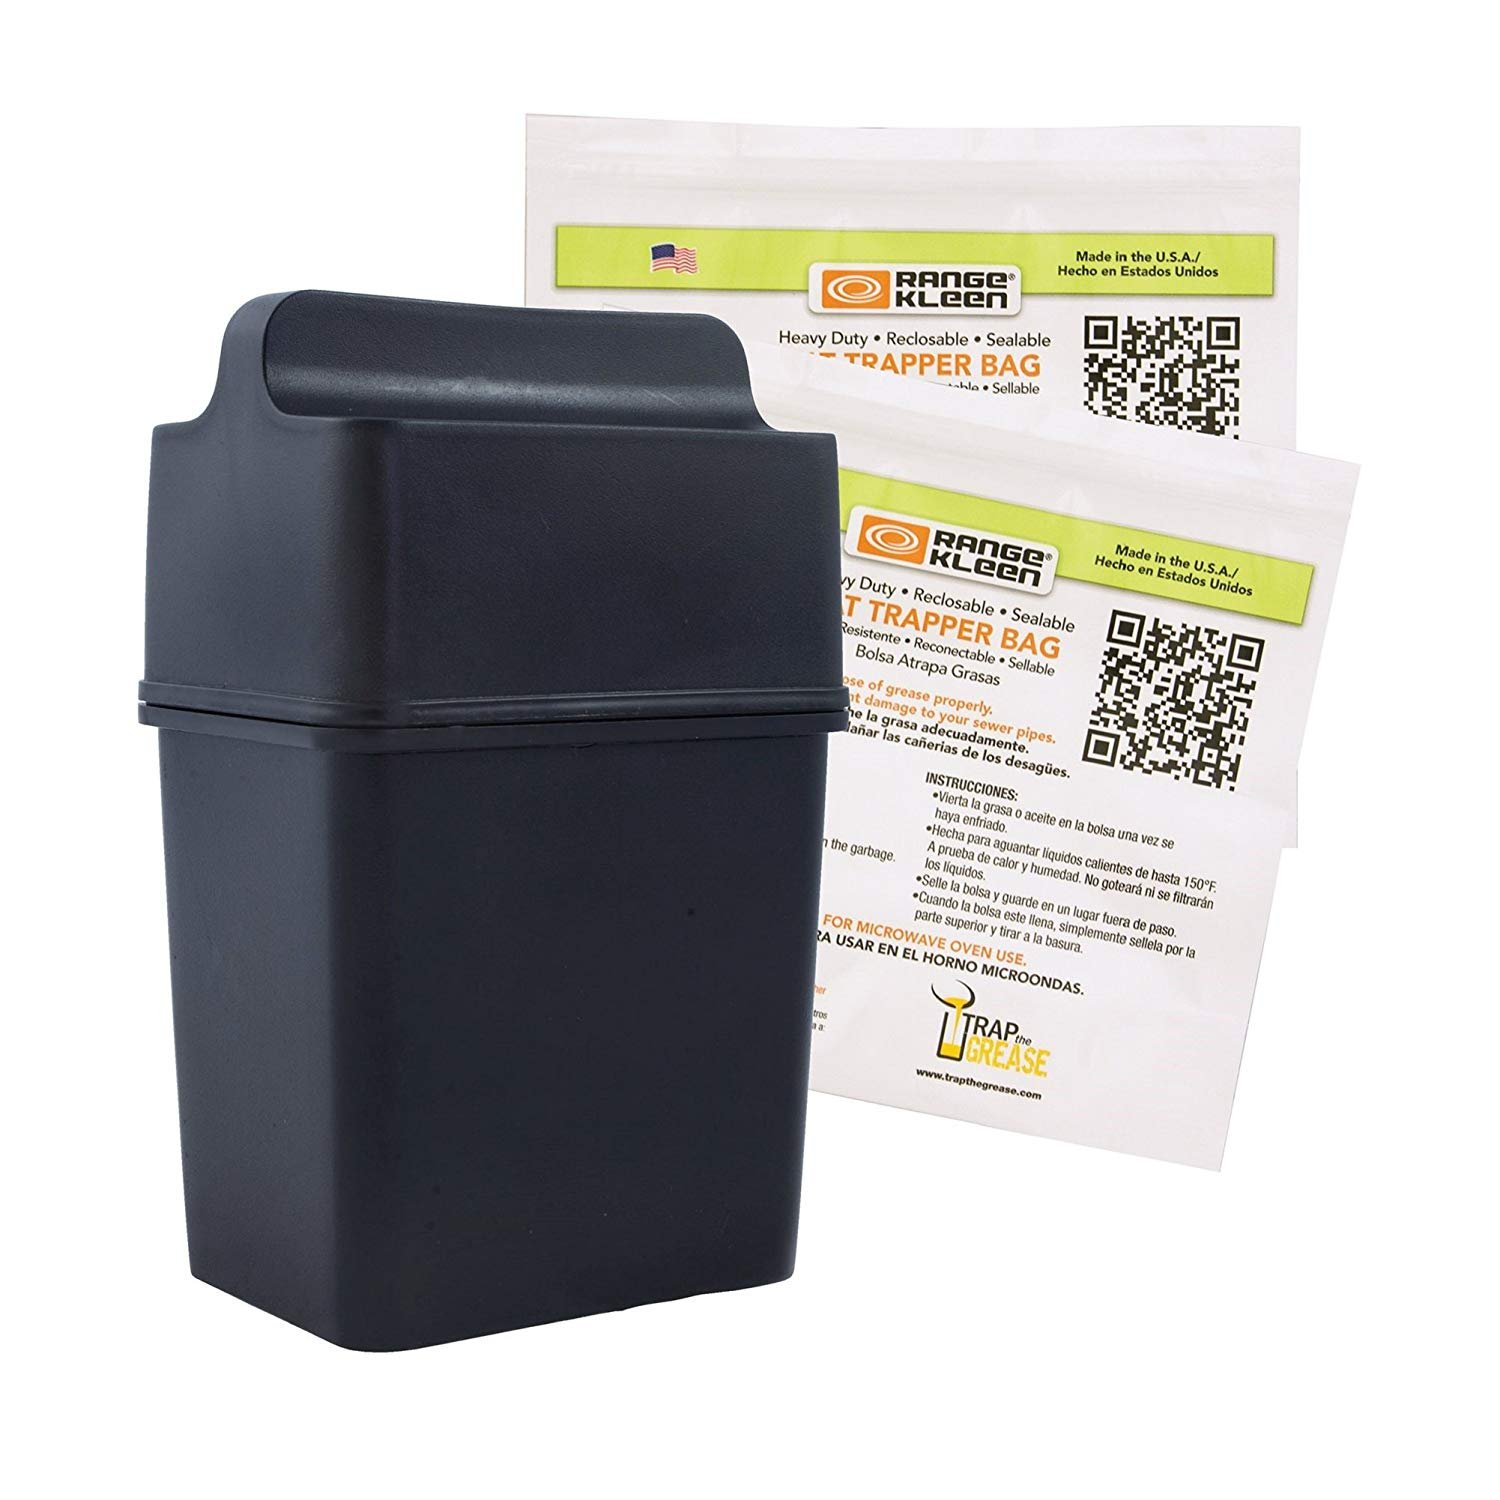 Amazon.com: Fat Trapper System/Grease Storage Container with TWELVE Disposable Grease Bags: Kitchen & Dining